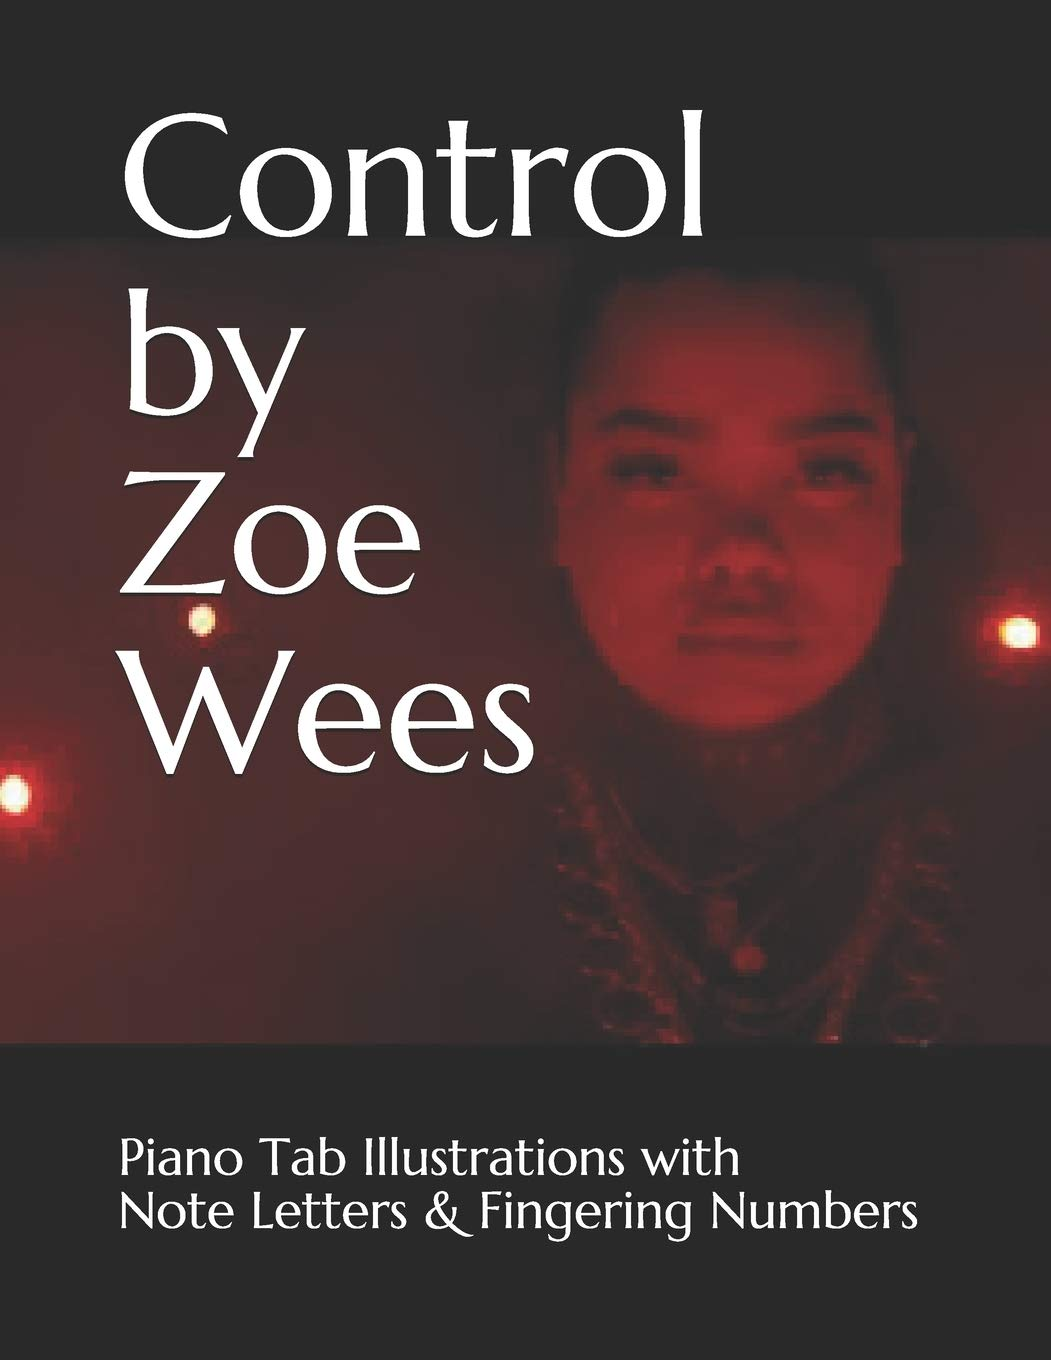 Control by Zoe Wees: Piano Tab Illustrations with Note Letters & Fingering  Numbers: Amazon.de: Caligiuri, Joseph: Fremdsprachige Bücher